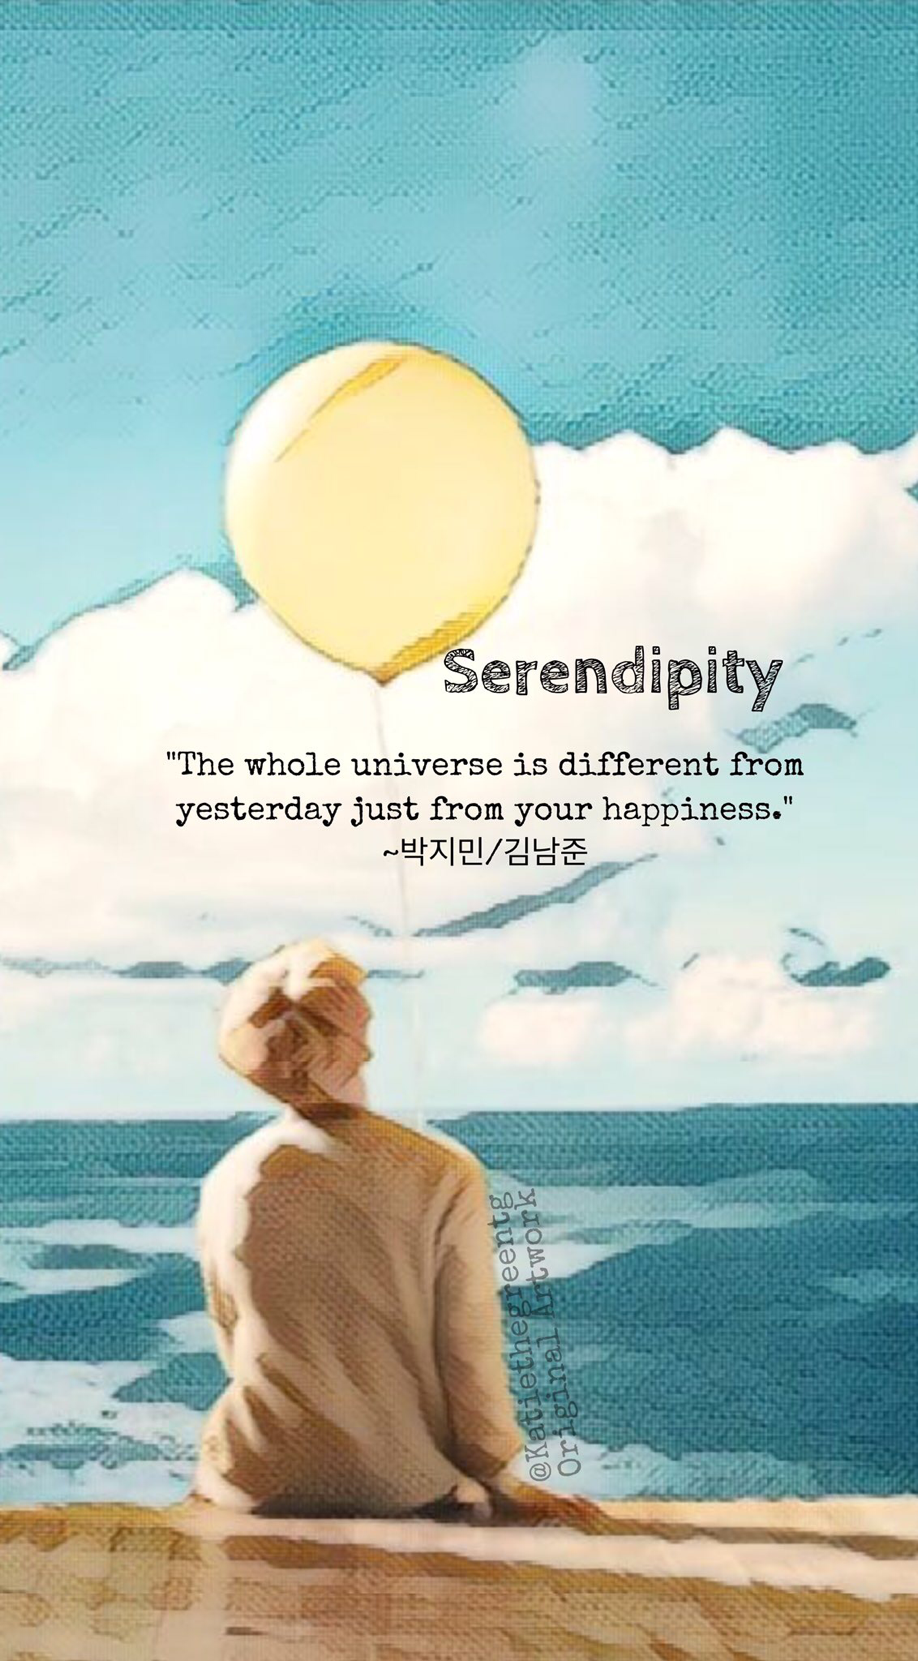 Wallpaper Love Yourself : Bts wallpaper serendipity Jimin her loveyourself love yourself BTS ? Pinterest Bts ...